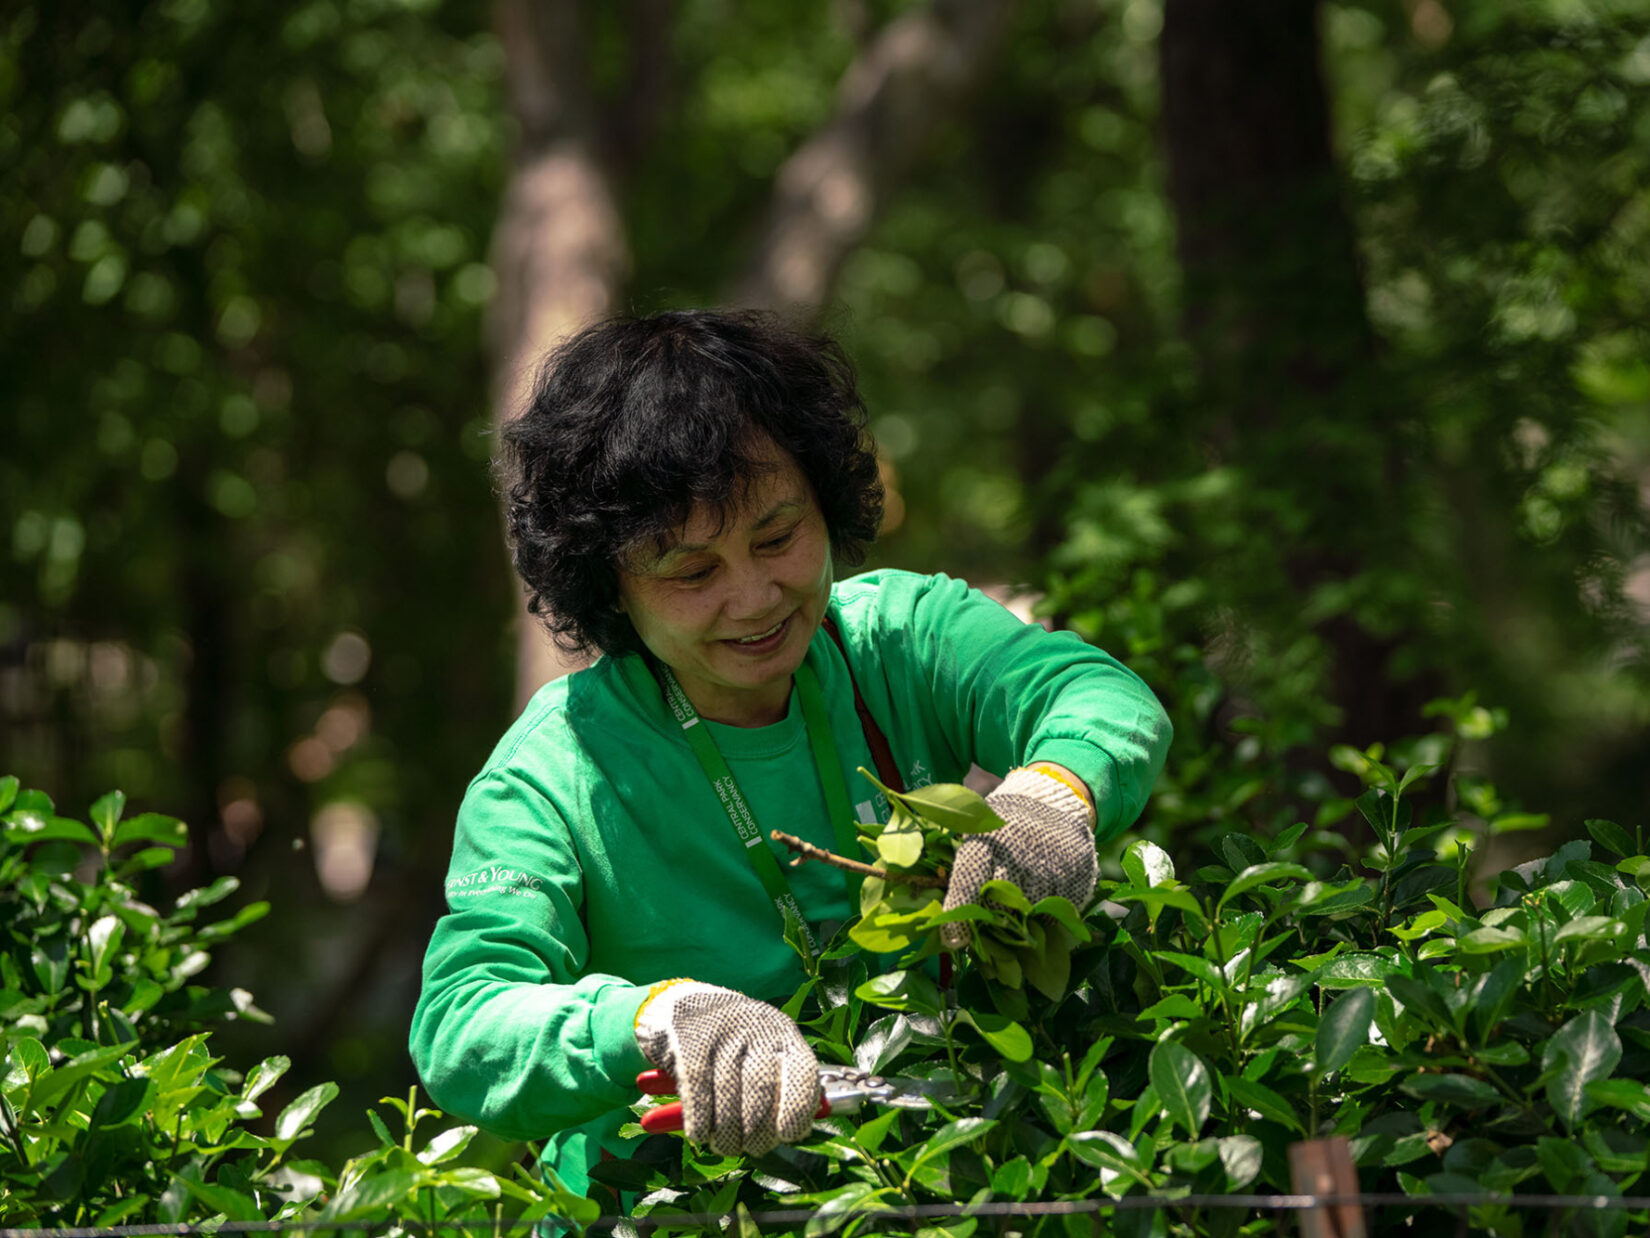 A volunteer in a green Conservancy sweatshirt prunes a bush